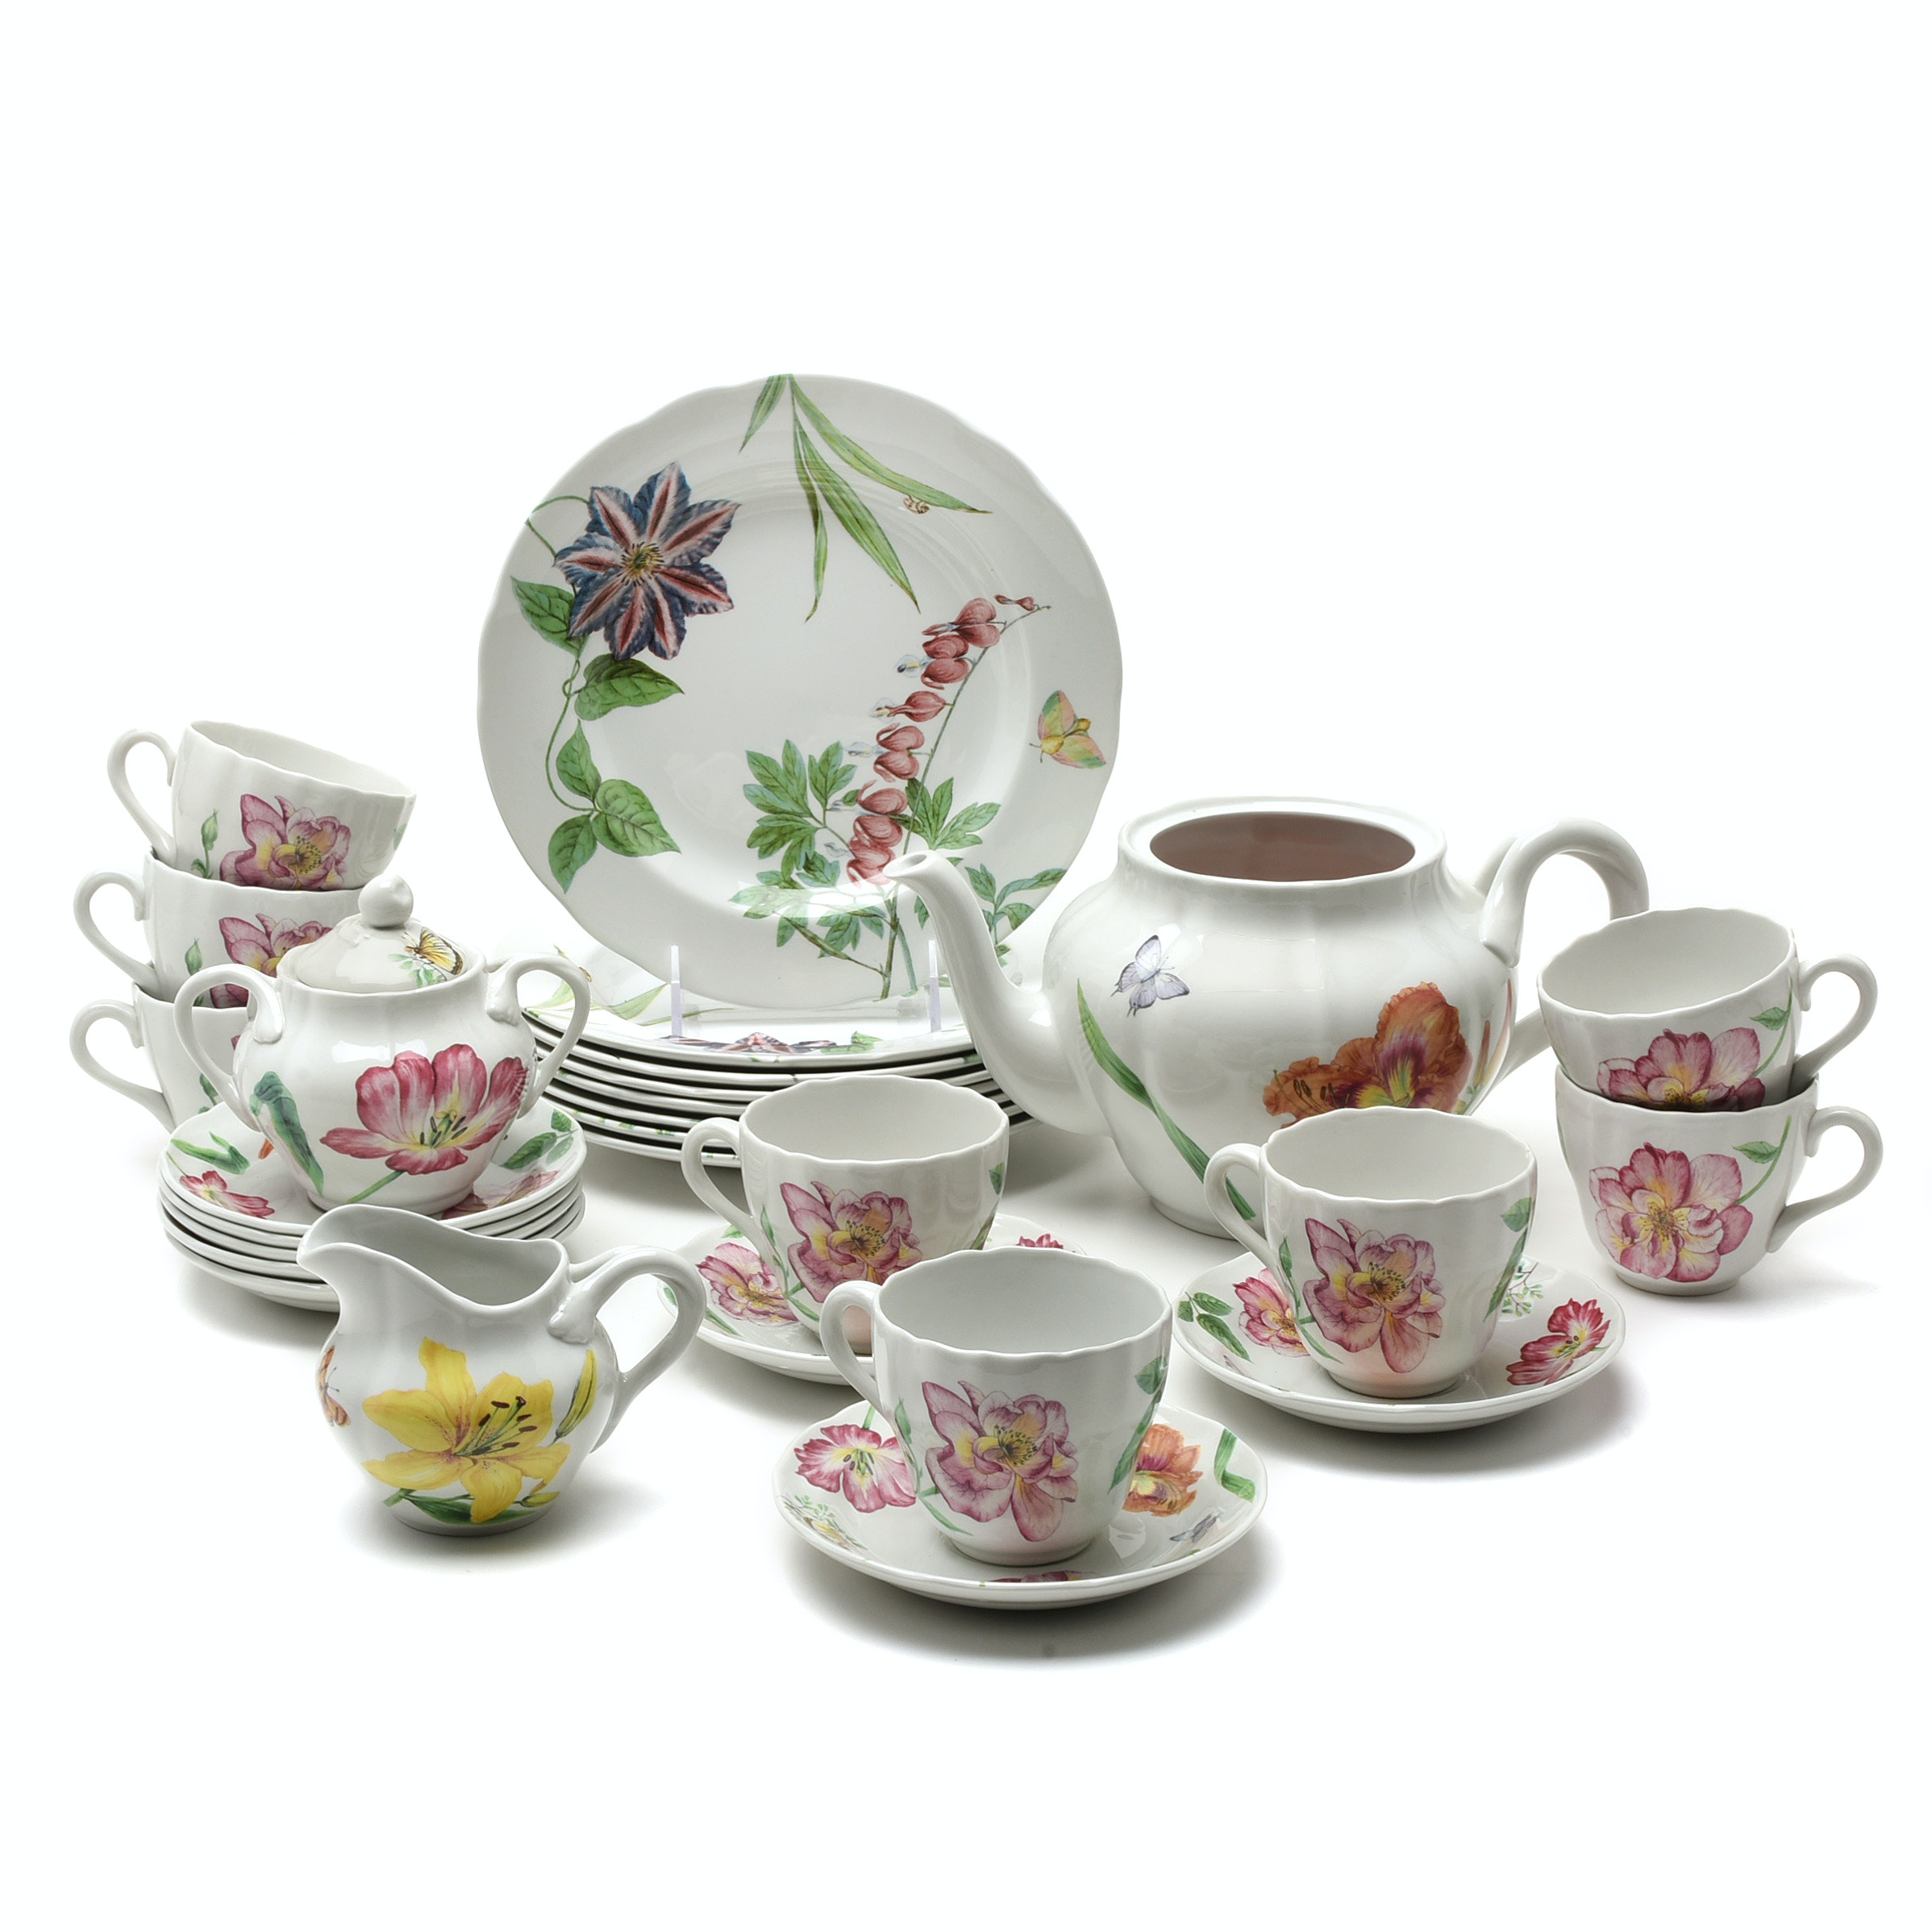 "Spode  ""English Floral"" Dessert Plates, Cups, Saucers and Three-Piece Tea set"